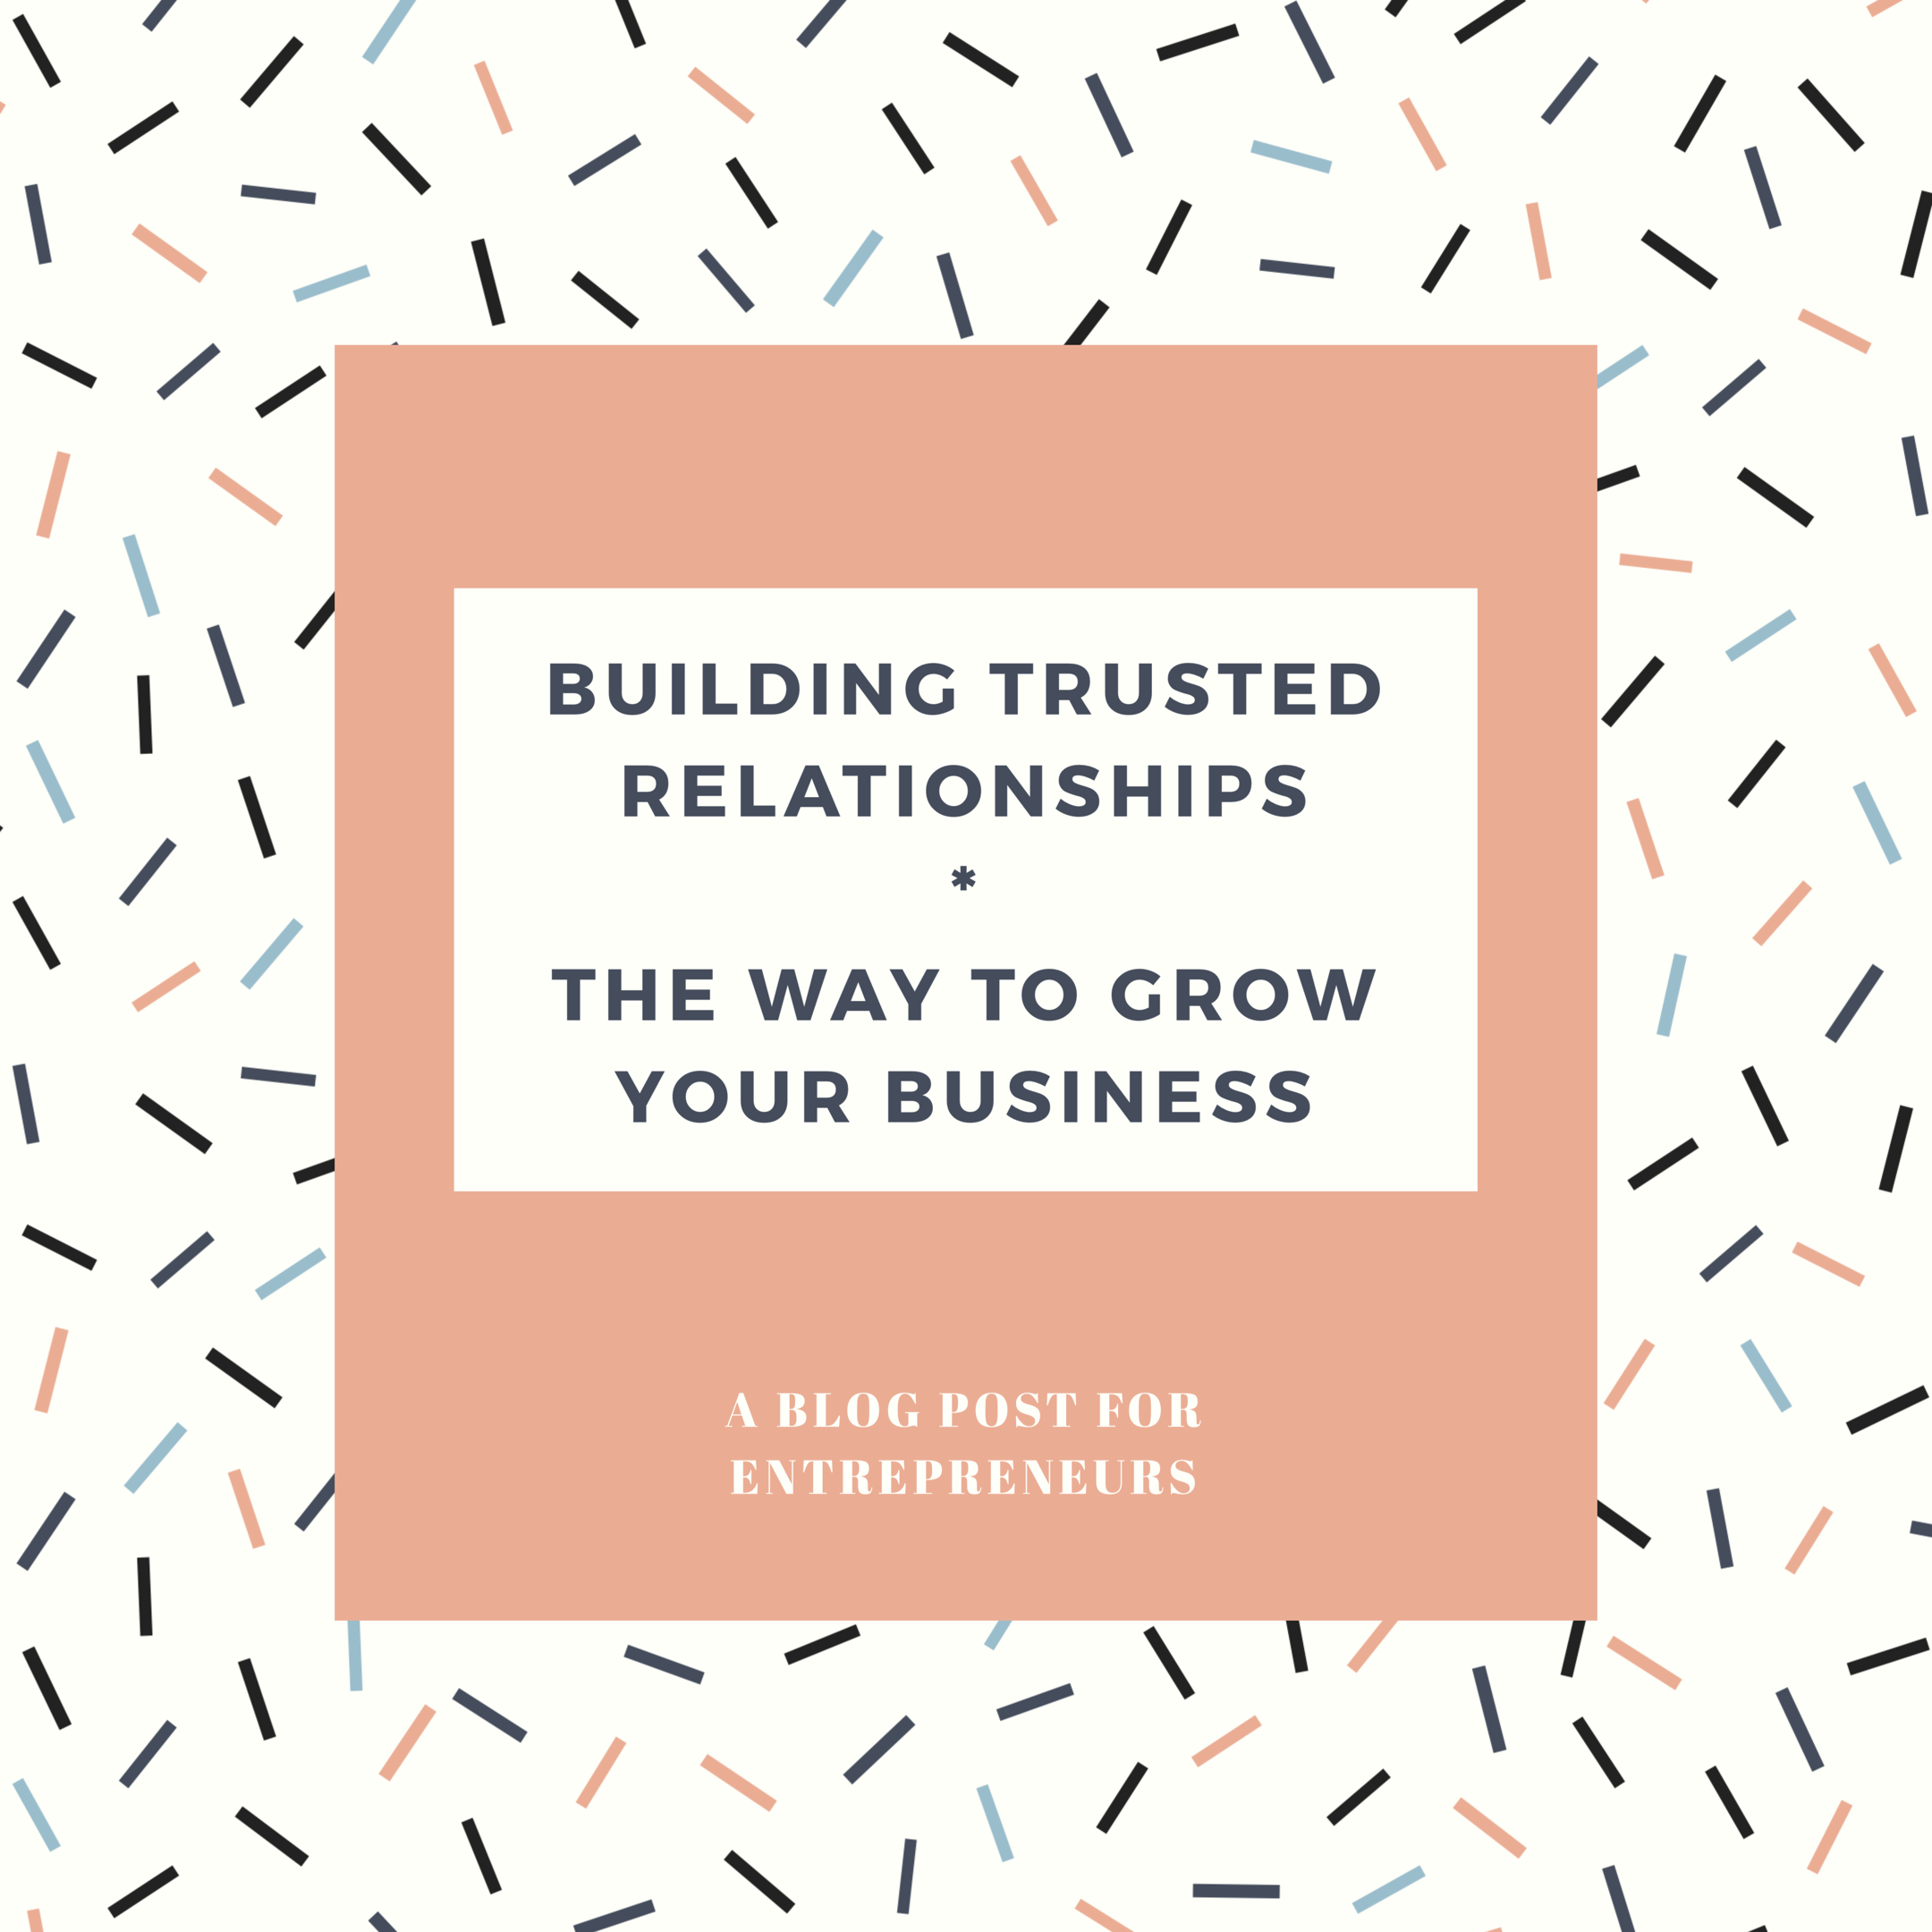 Building Trusted relationships through networking, the way to grow your business